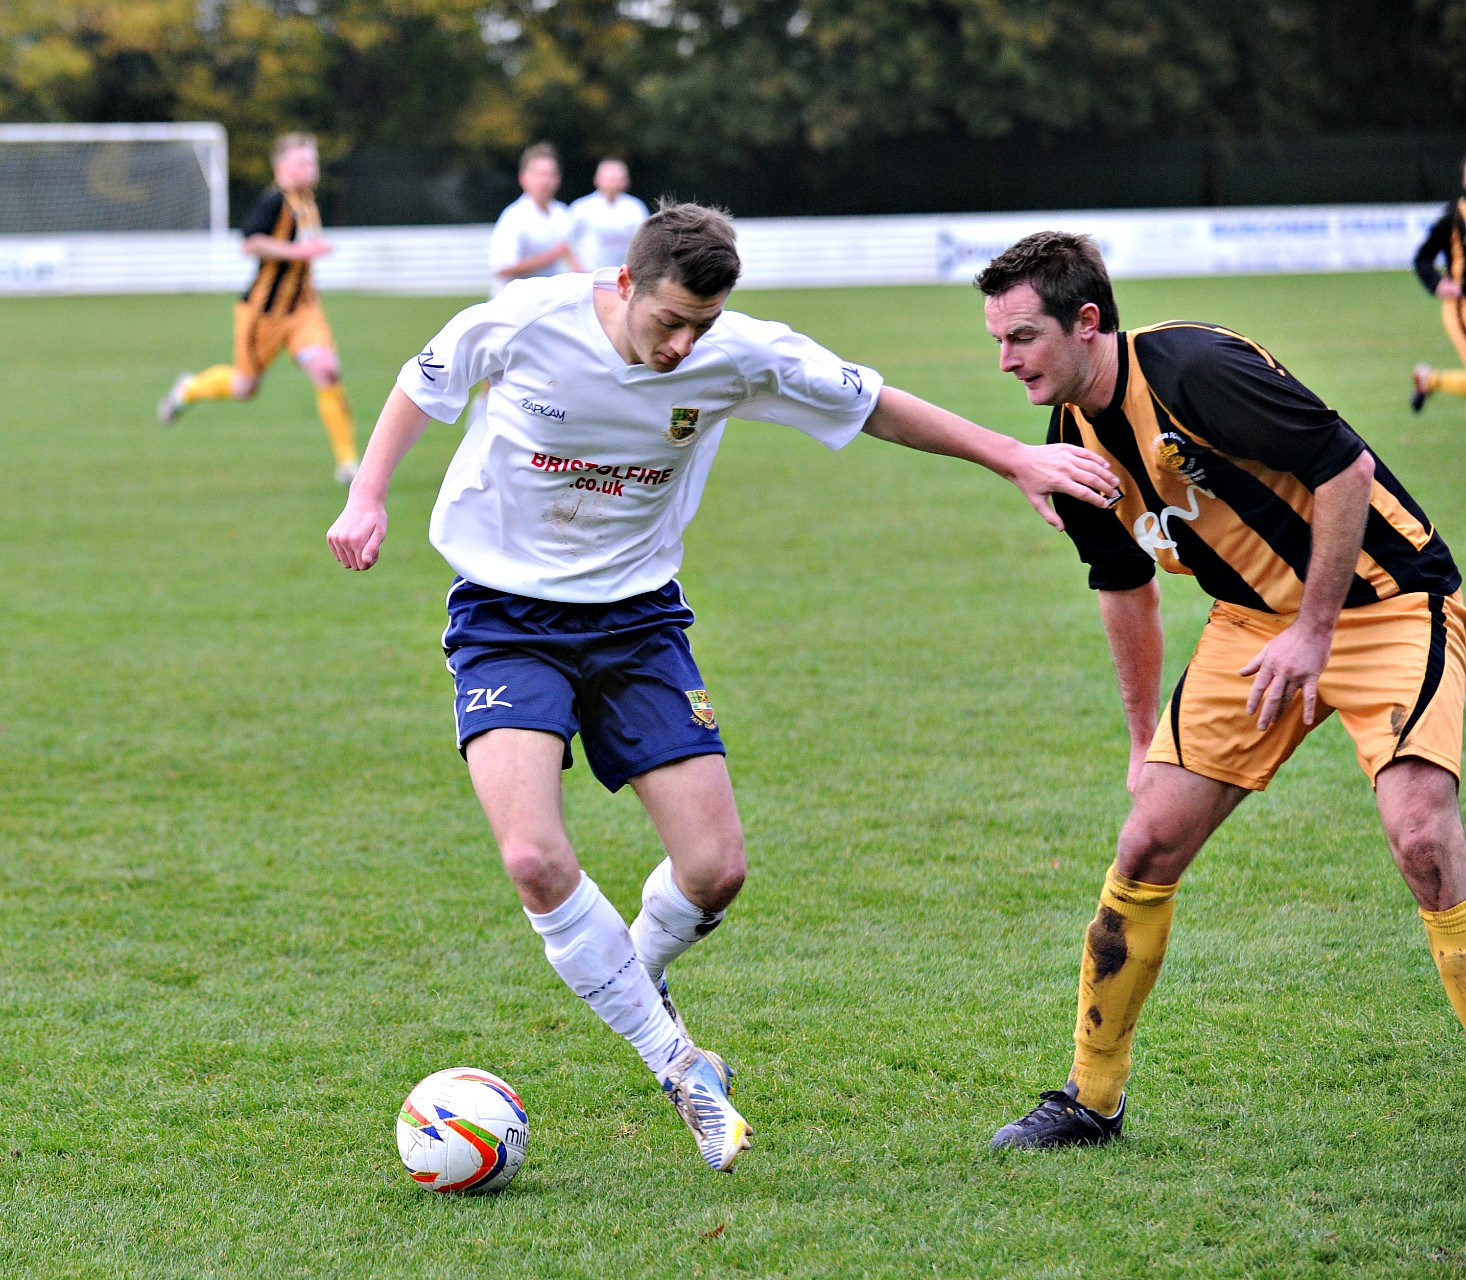 Yate Town striker Jake Jackson scored the opening goal